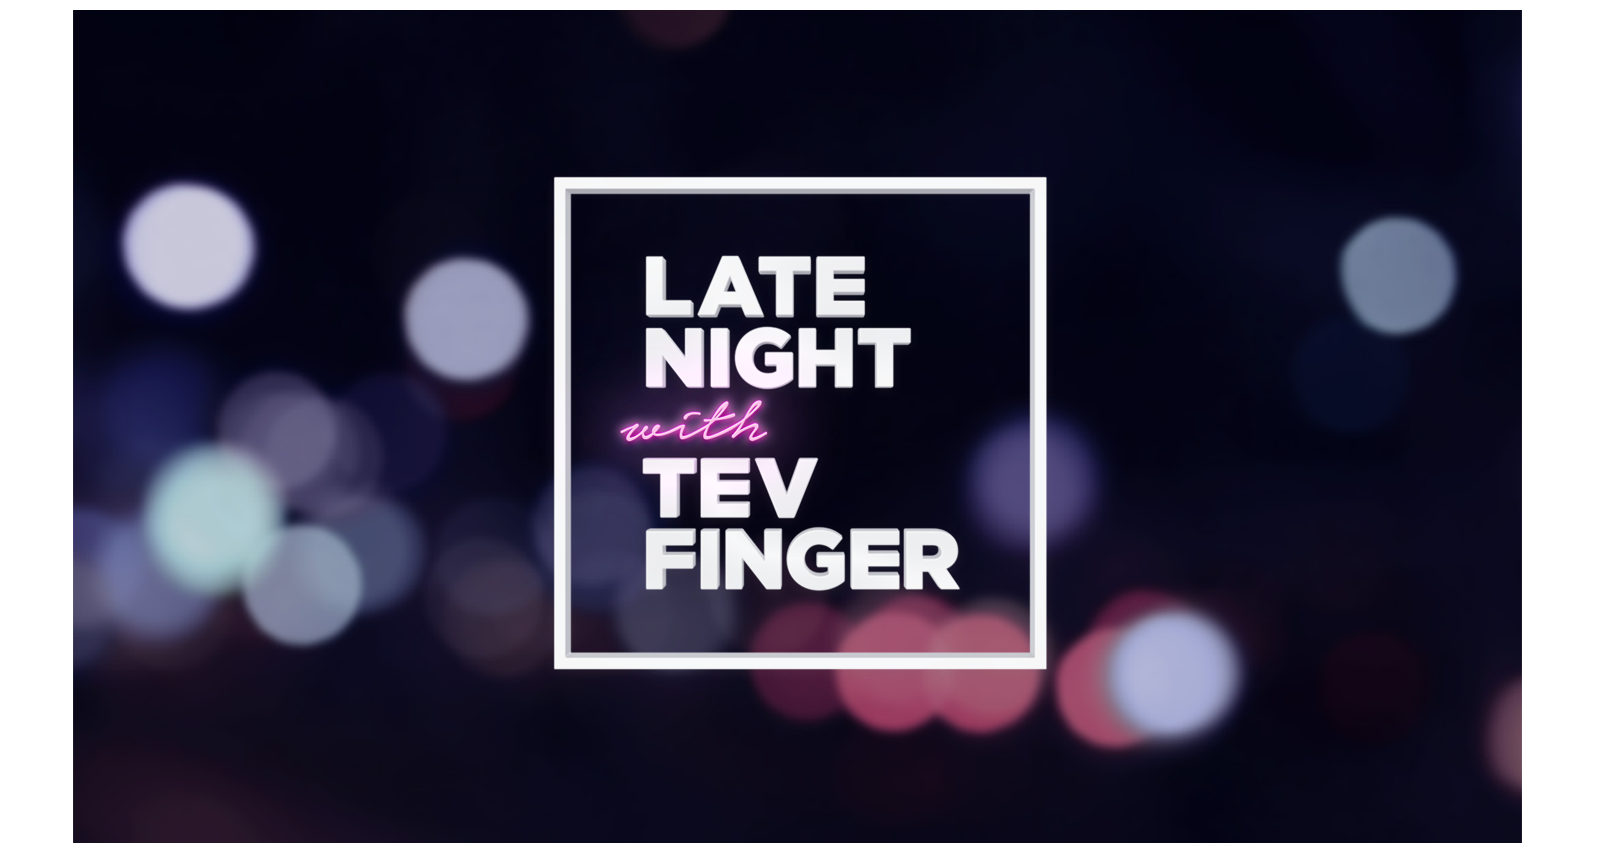 Diego Guevara - Luxury Brand Partners - Late Night With Tev Finger